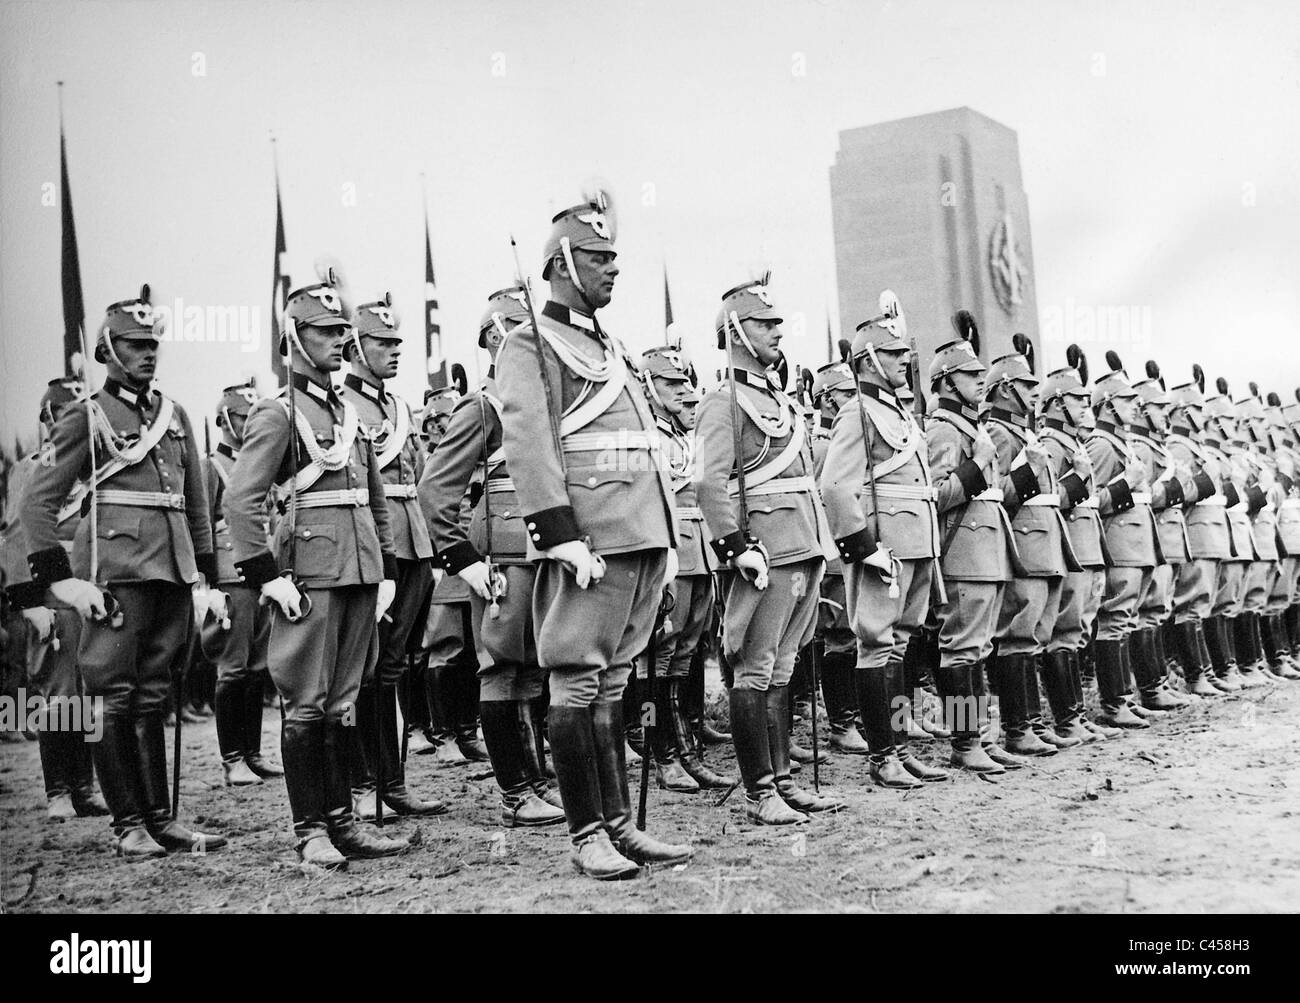 Police in parade uniforms, 1937 - Stock Image